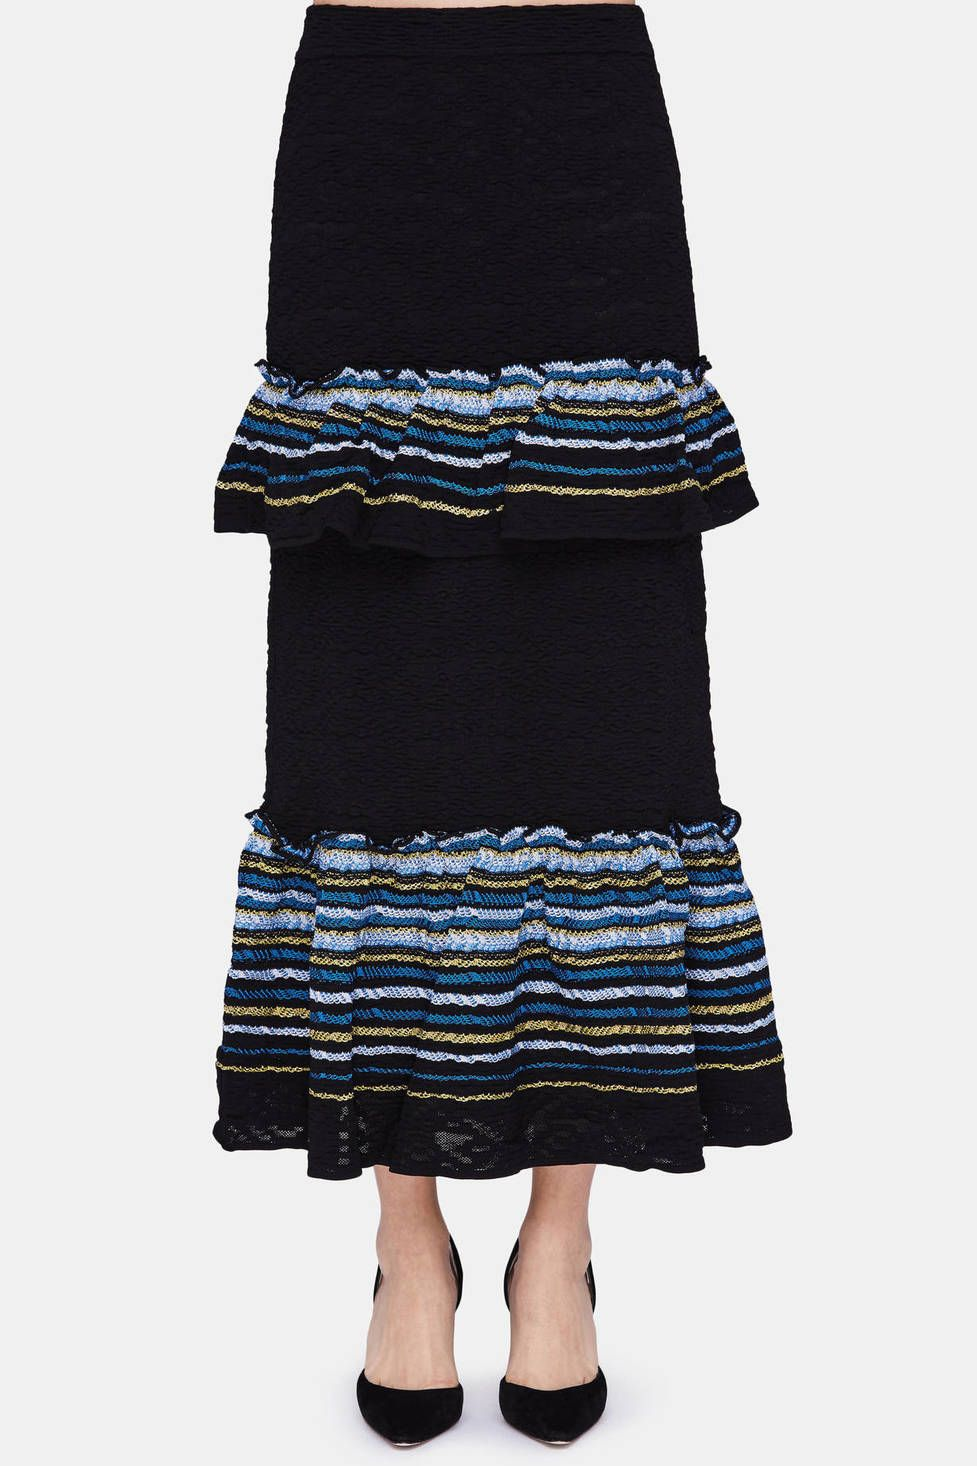 Peter Pilotto's resort 2017 collection offers a fresh take on the dress: a cropped top paired with a long skirt. Designers Pilotto and Christopher de Vos drew upon Latin American motifs as inspiration for the ruffled panels that add movement to the elongated silhouette. This long skirt is made in Italy of textured jacquard: solid navy accented by striped flourishes. The elasticated-waist style pulls on for a close fit. Pair with the matching top.